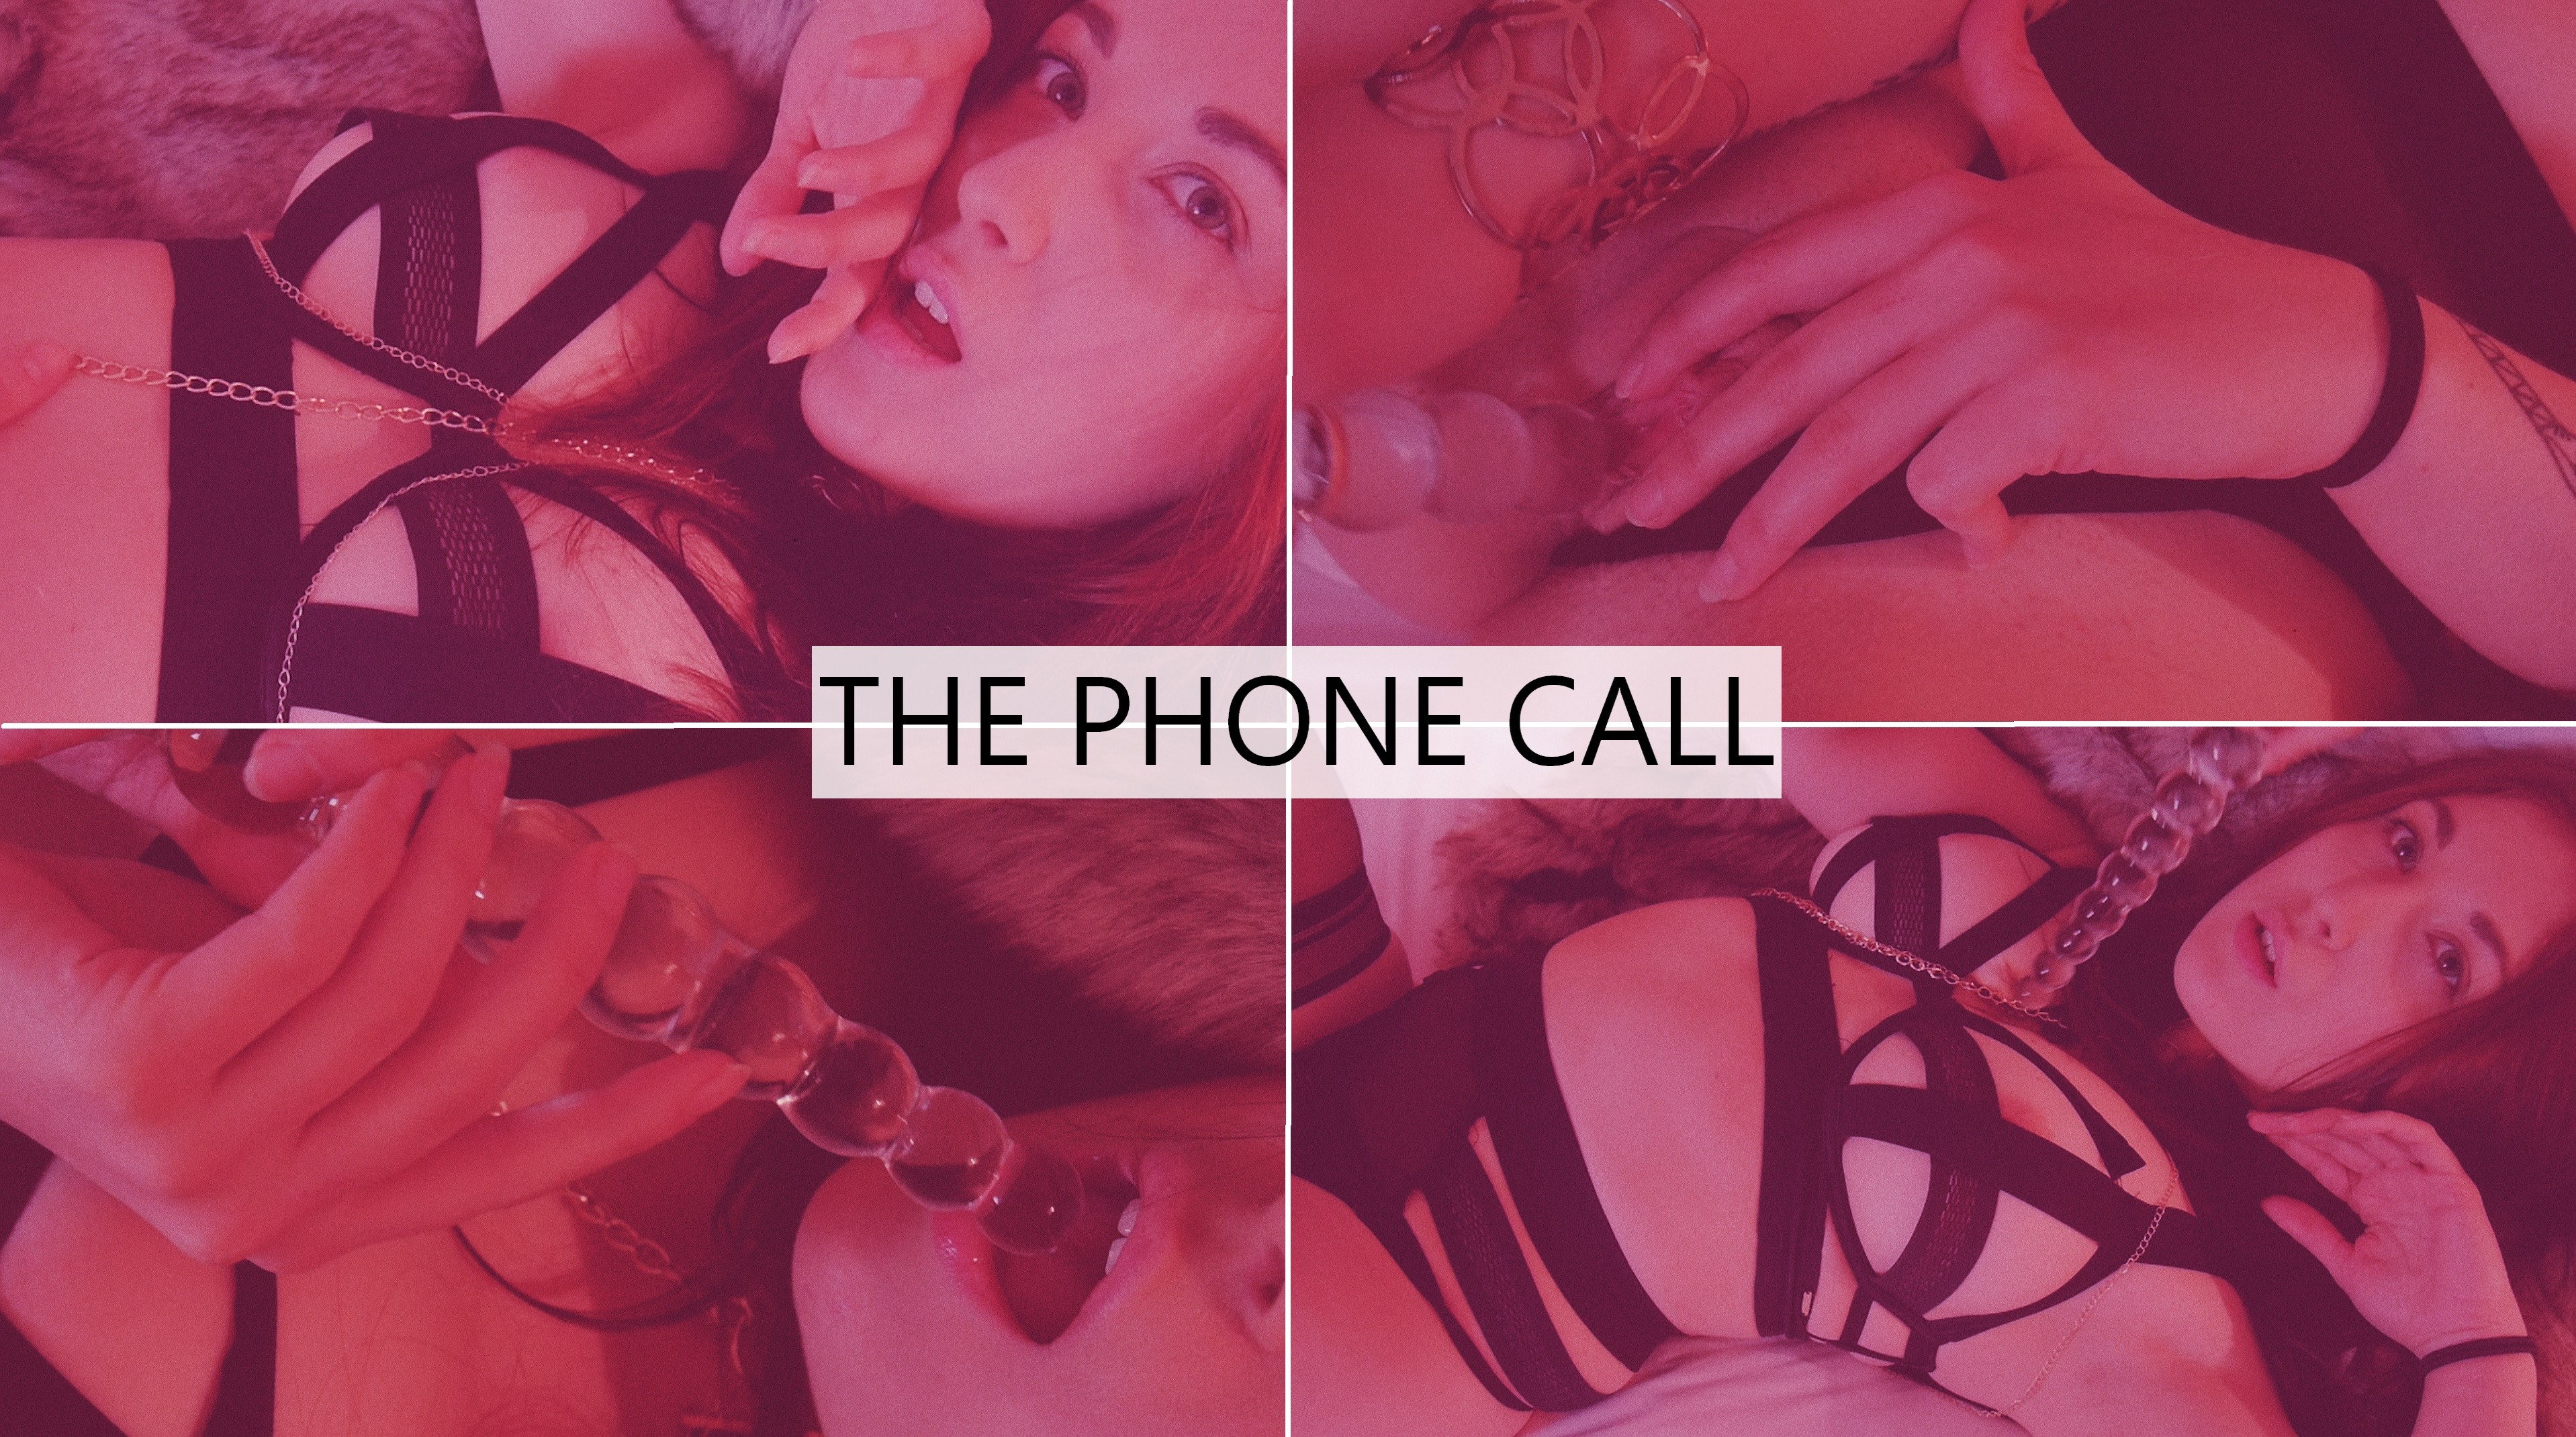 STORYTELLING JOI – The Phone Call